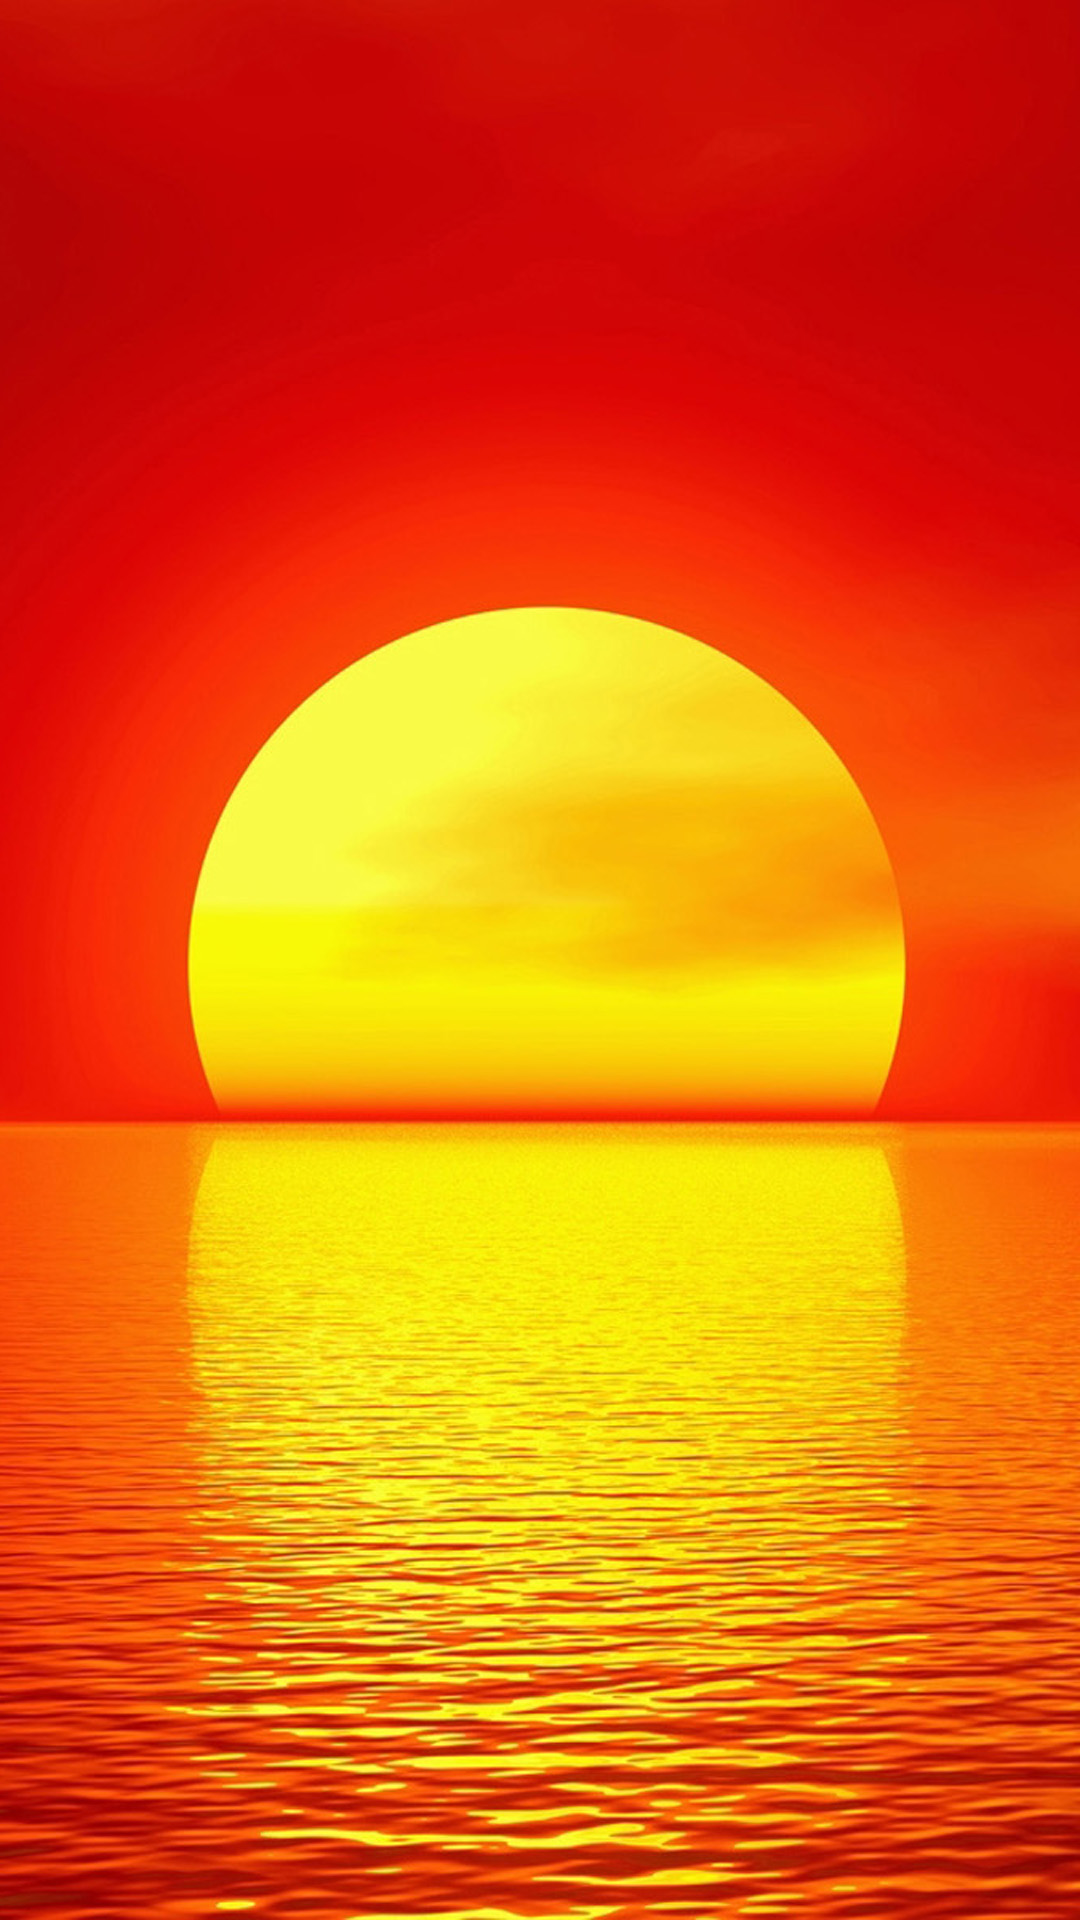 Free Download Sunset Melt Gold Wallpaper For Iphone 6 Plus Iphone